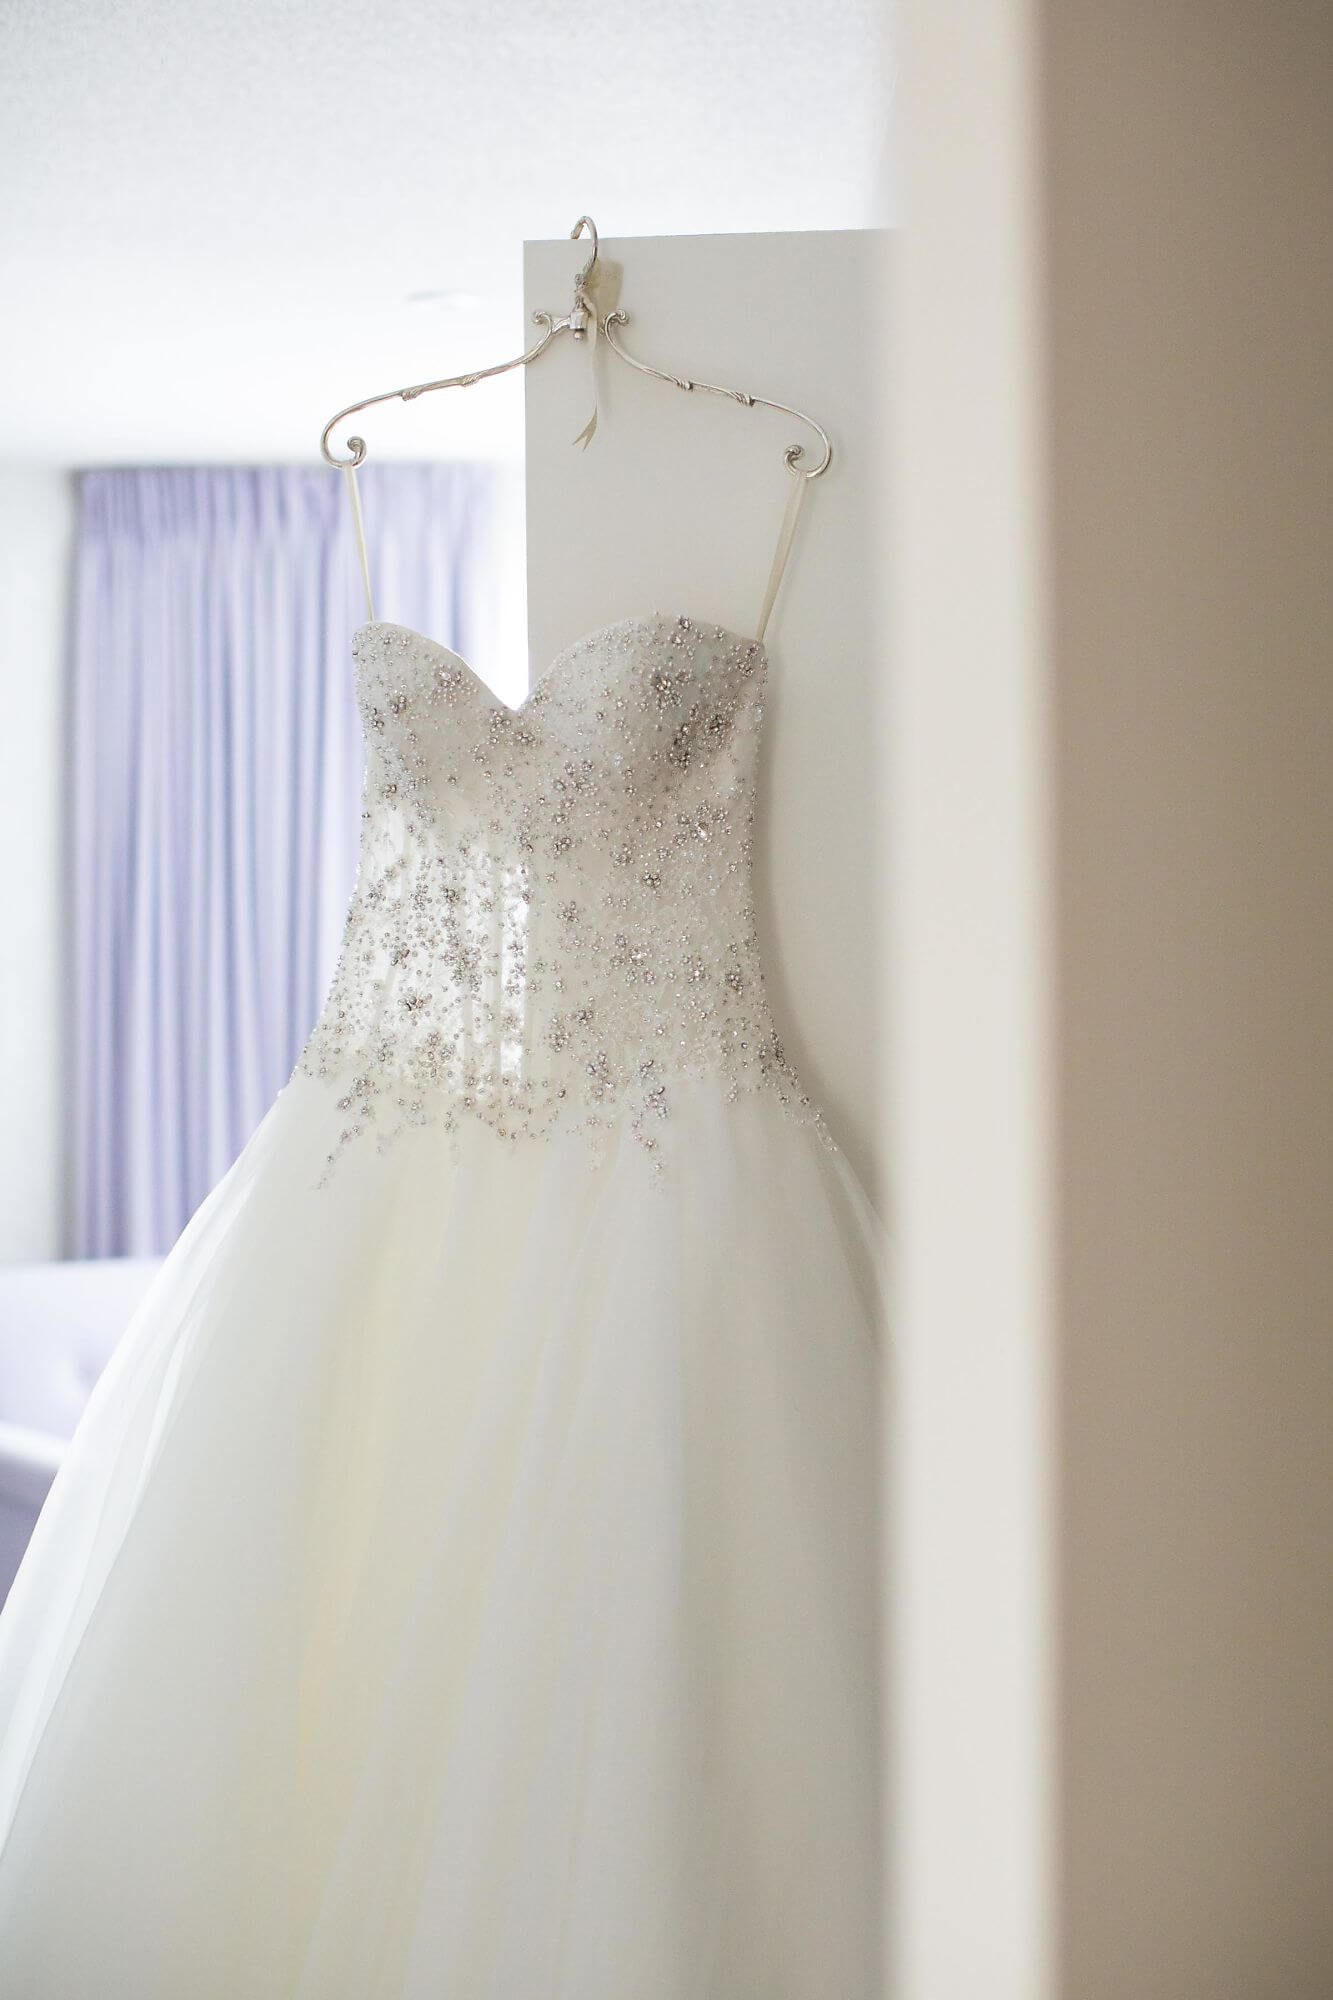 Bridal gown hanging on doorway - Niagara wedding - Historia Wedding and Event Planning